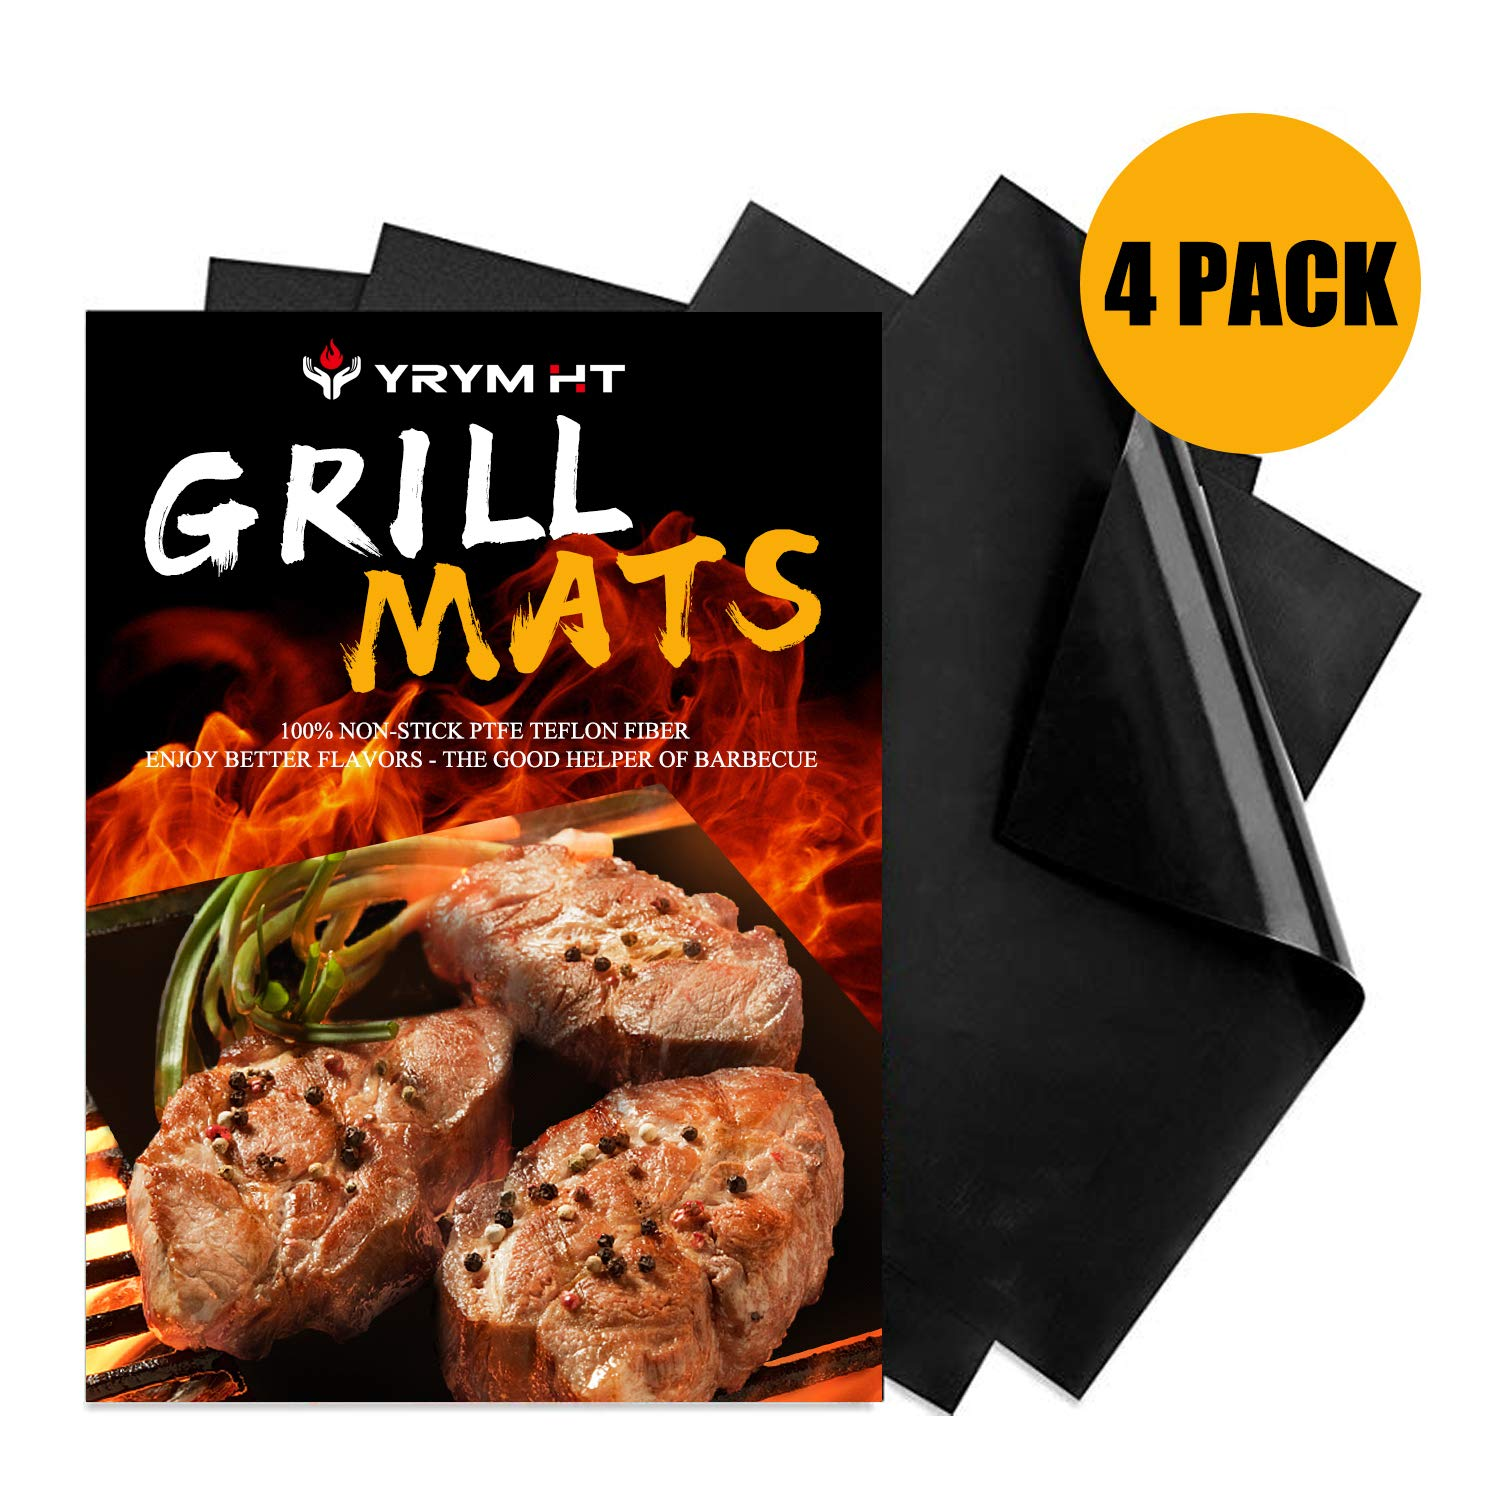 Best Grill Mat - Set of 4 Thick BBQ Grill Mats Non Stick Barbecue Grill Mats, Reusable and Easy to Clean by YRYM HT